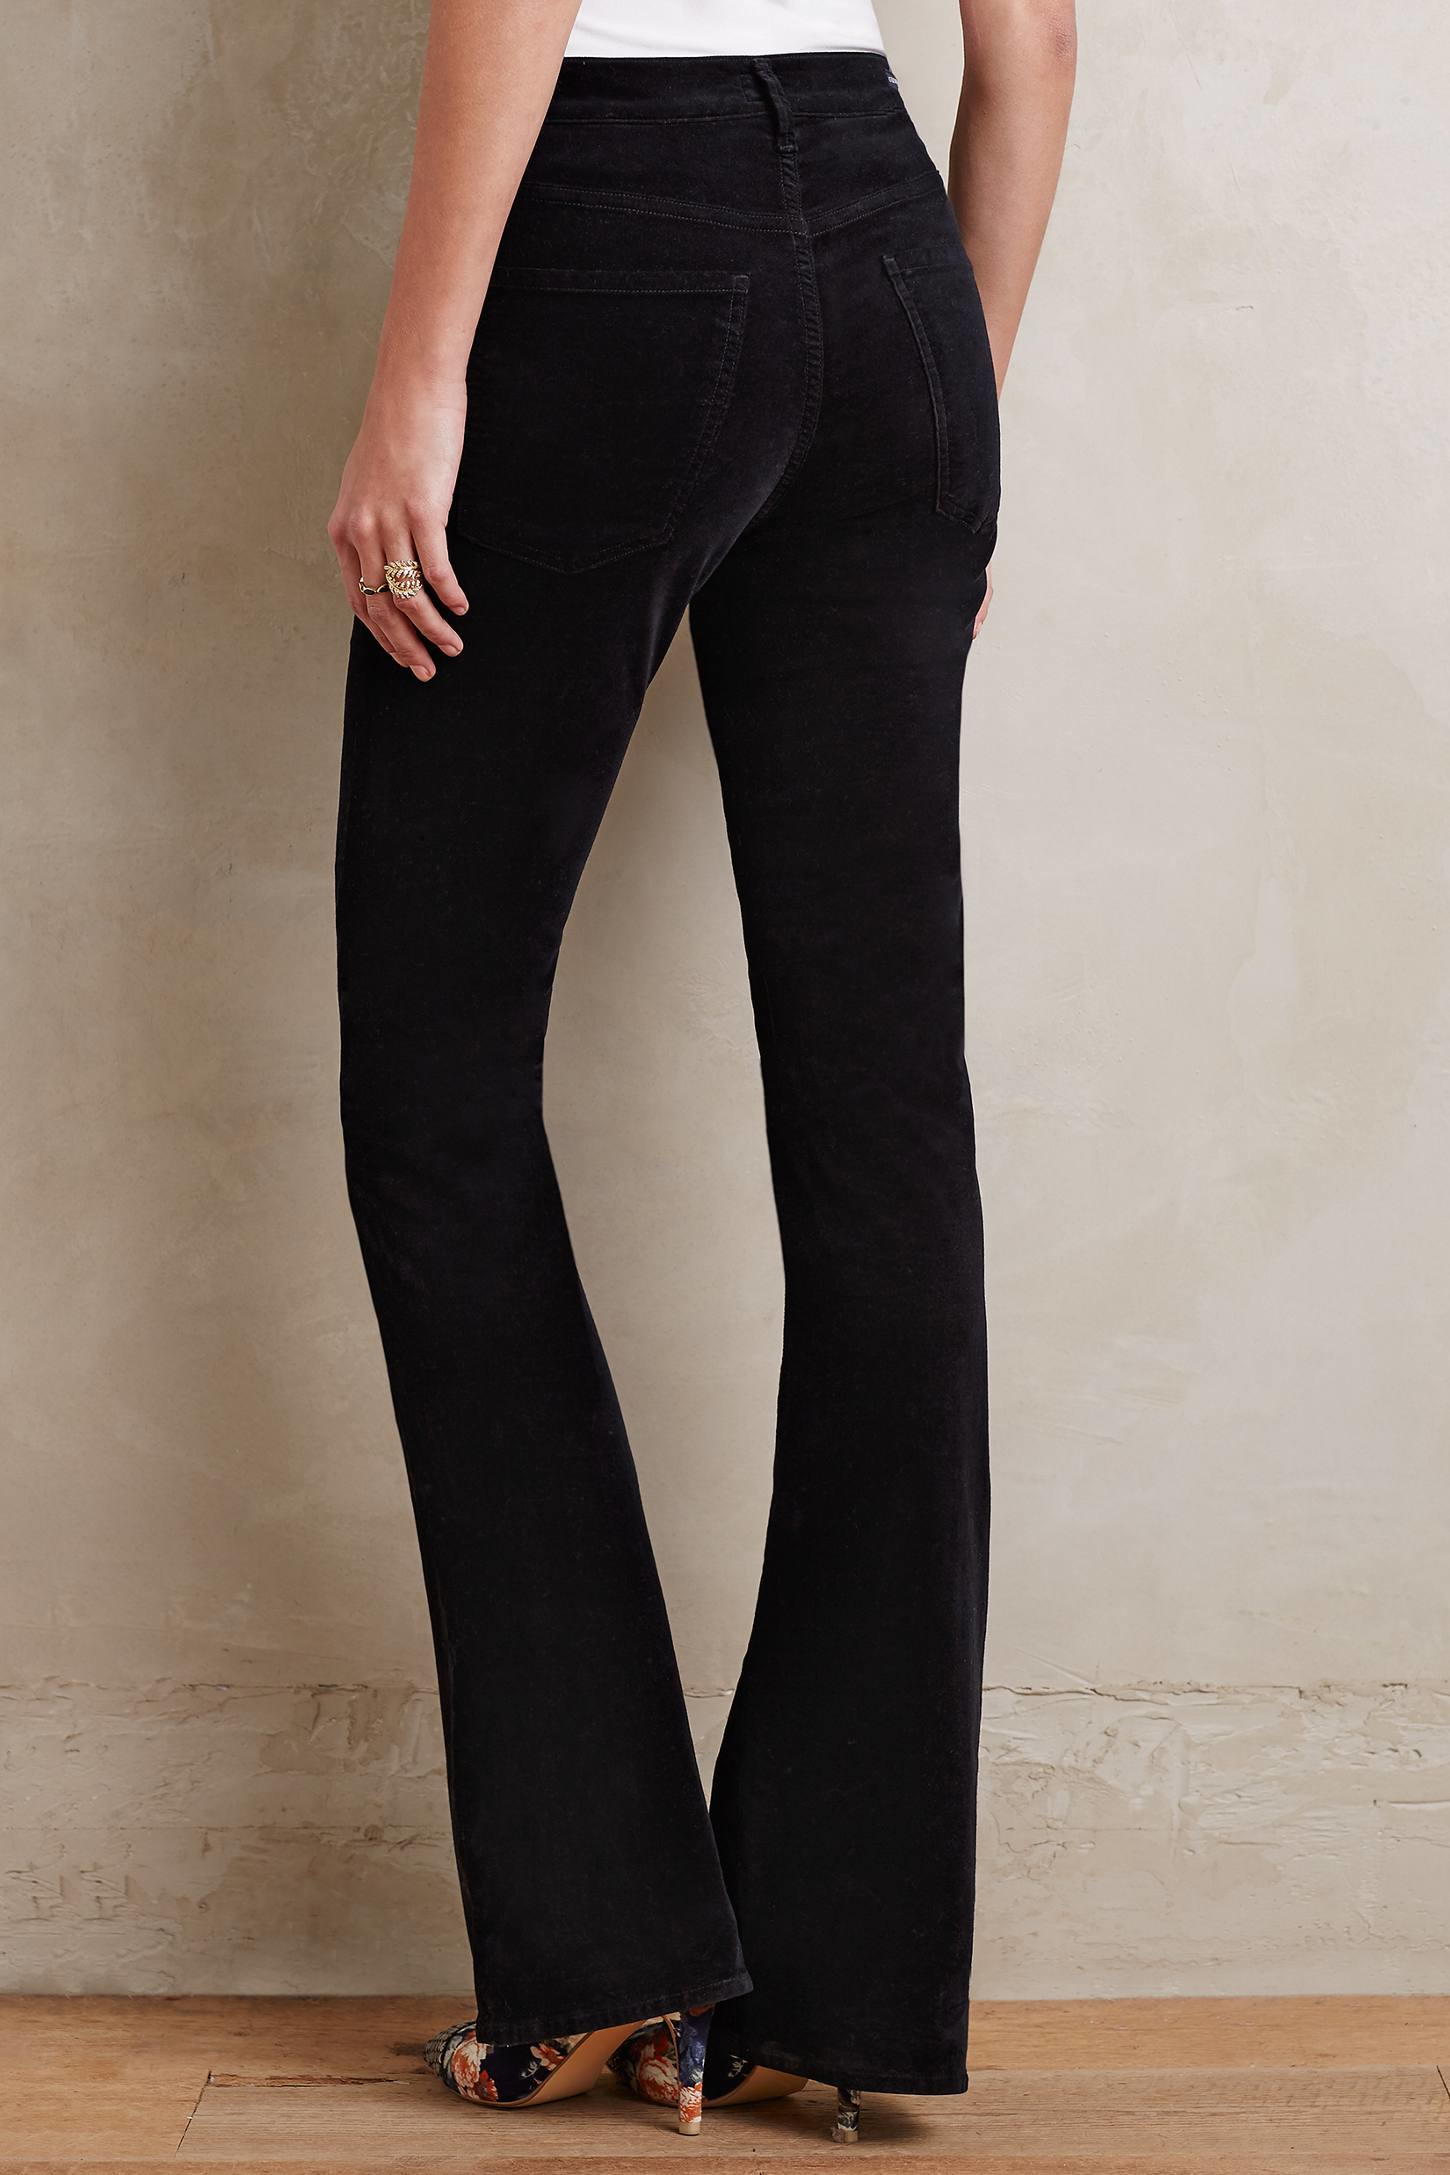 Citizens of humanity Fleetwood Velvet Flare Jeans in Black | Lyst